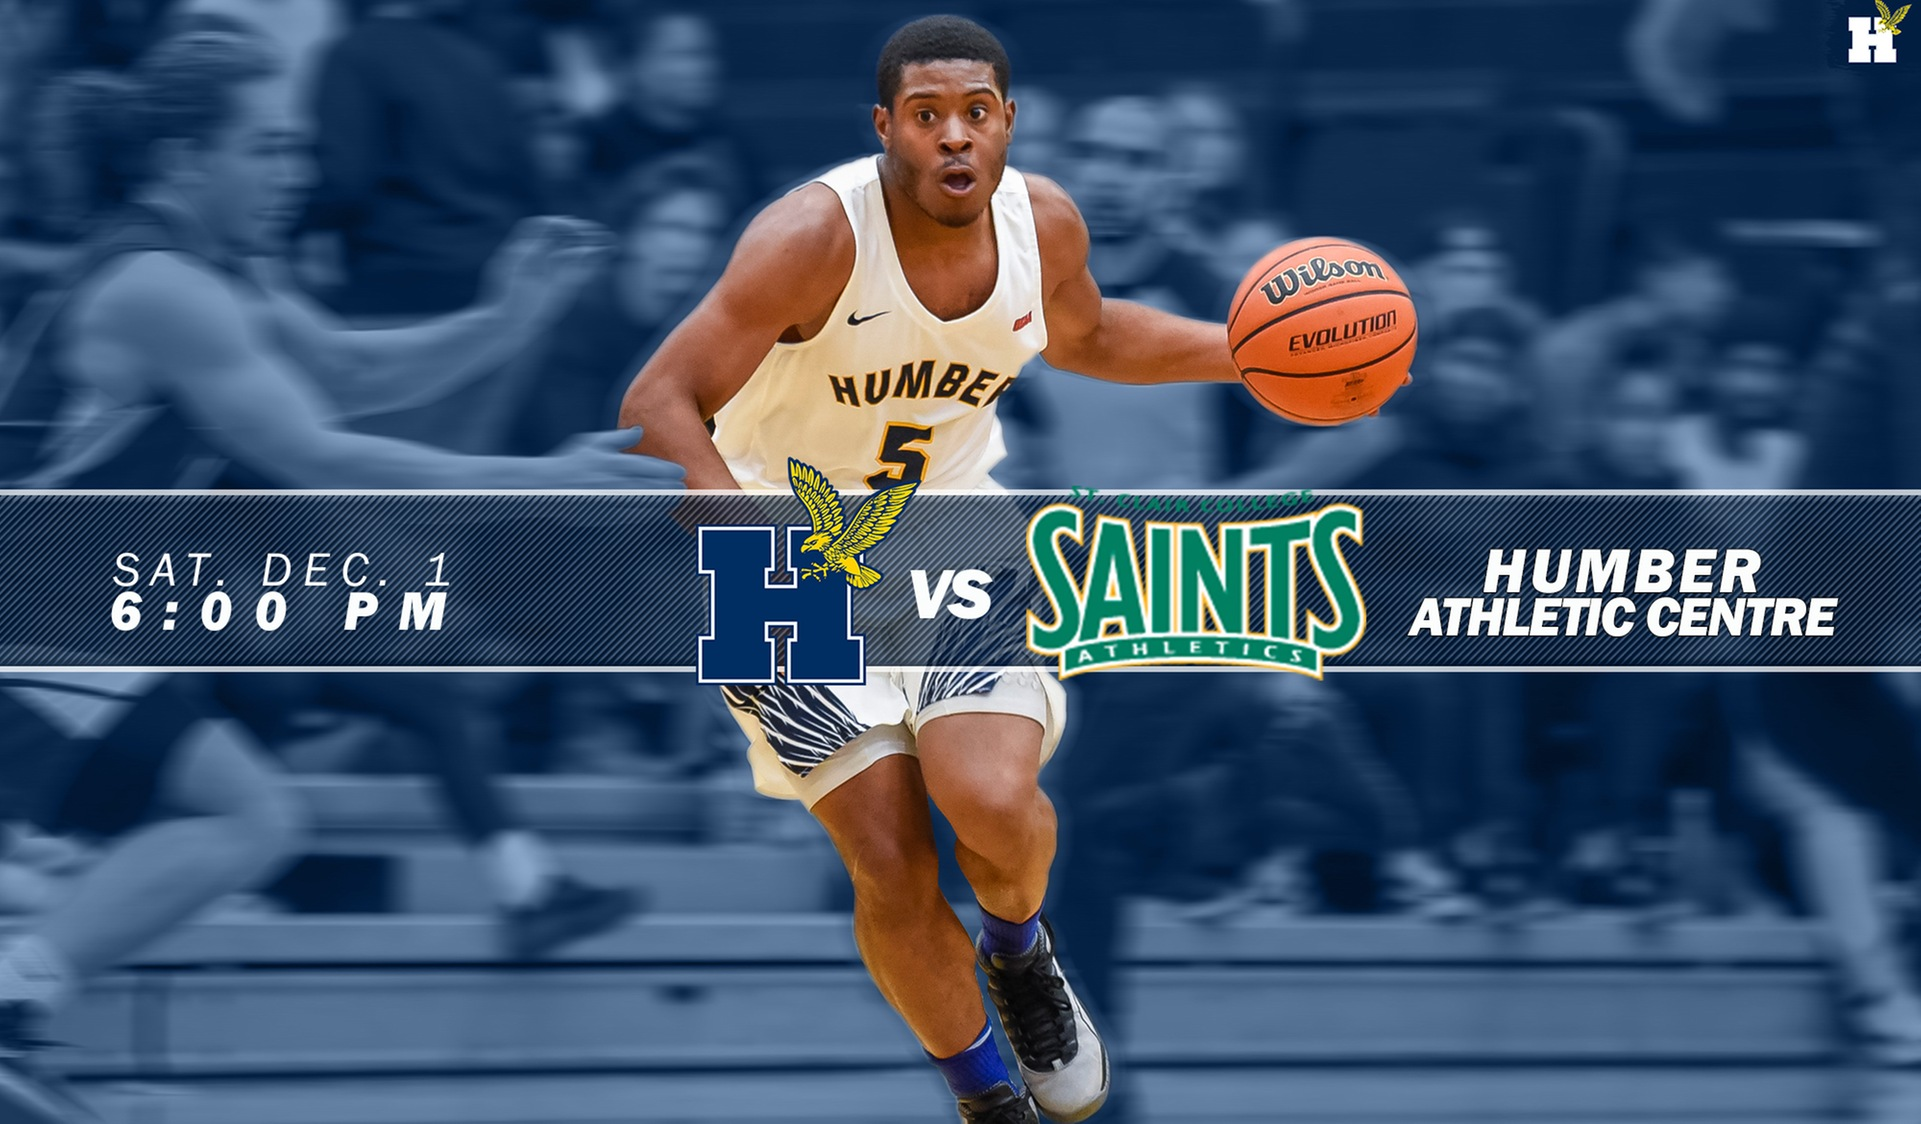 FIRST-HALF CONCLUDES SATURDAY FOR No. 3 MEN'S BASKETBALL